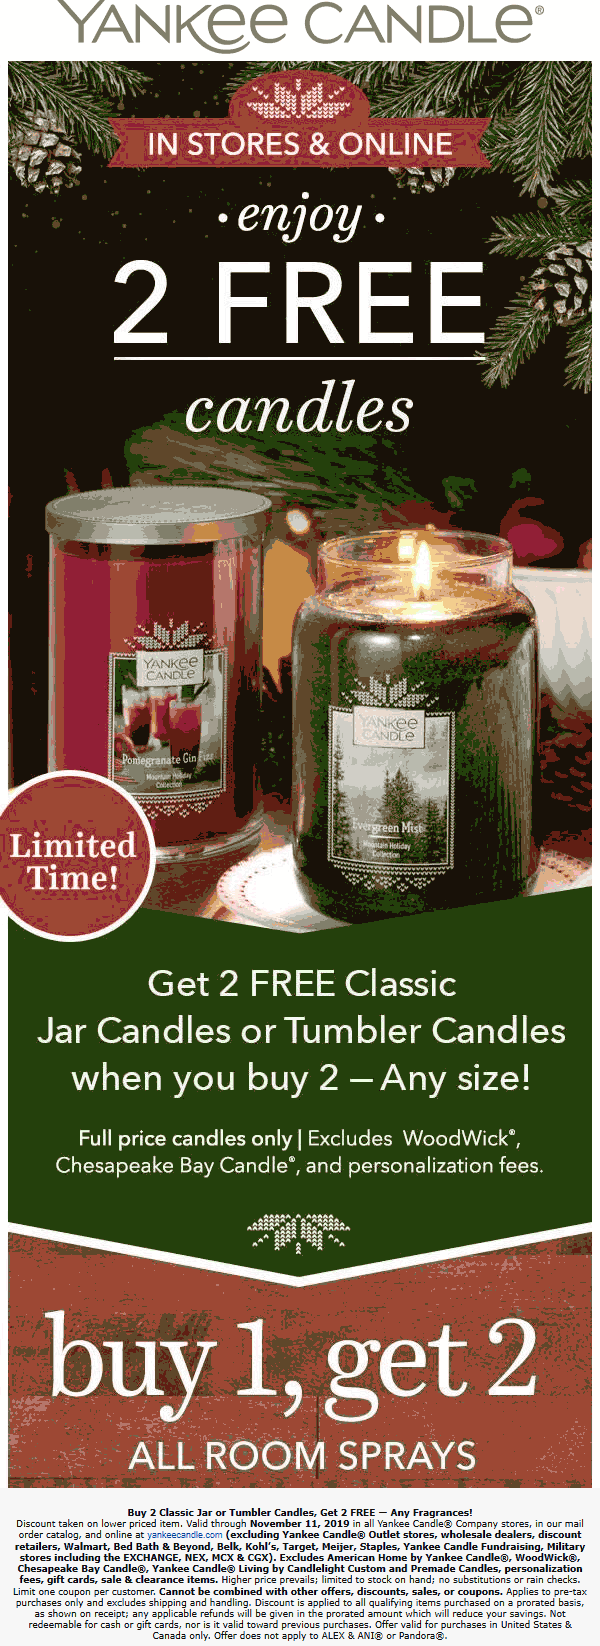 Yankee Candle Coupon November 2019 4-for-2 on candles & 3-for-1 room sprays at Yankee Candle, ditto online